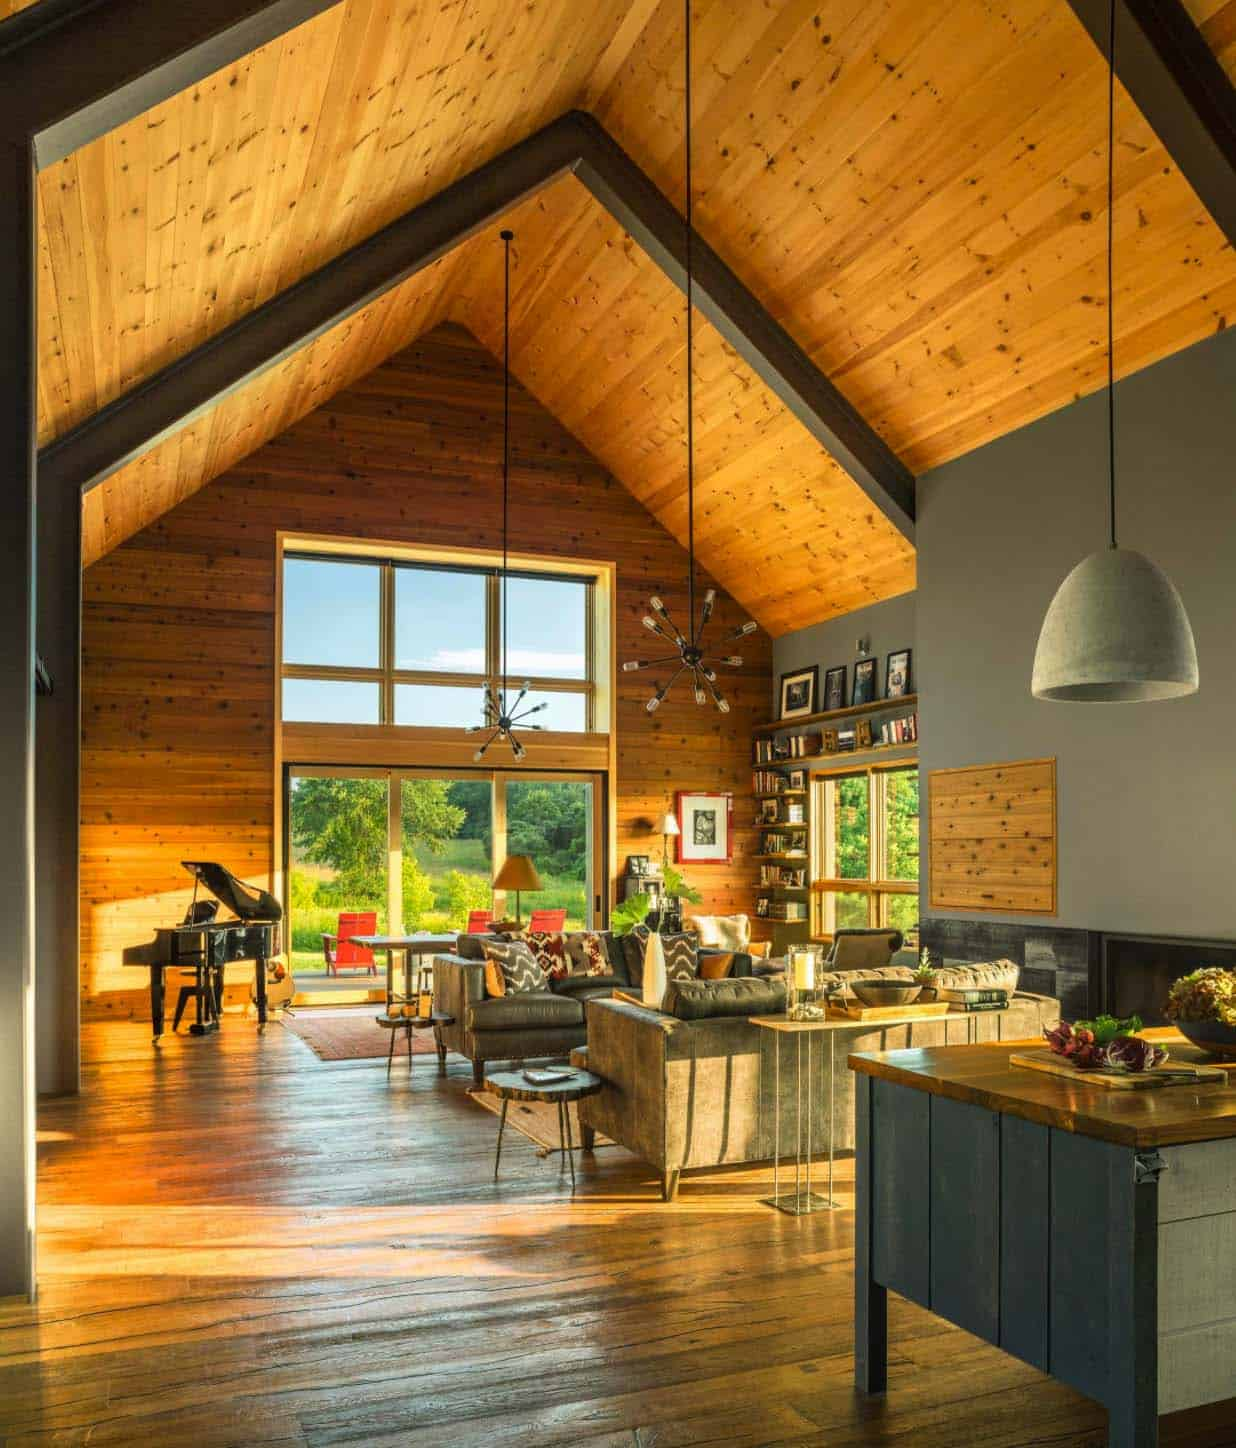 Gentil Modern Barn House Joan Heaton Architects 13 1 Kindesign Small And Cozy  Modern Barn House Getaway